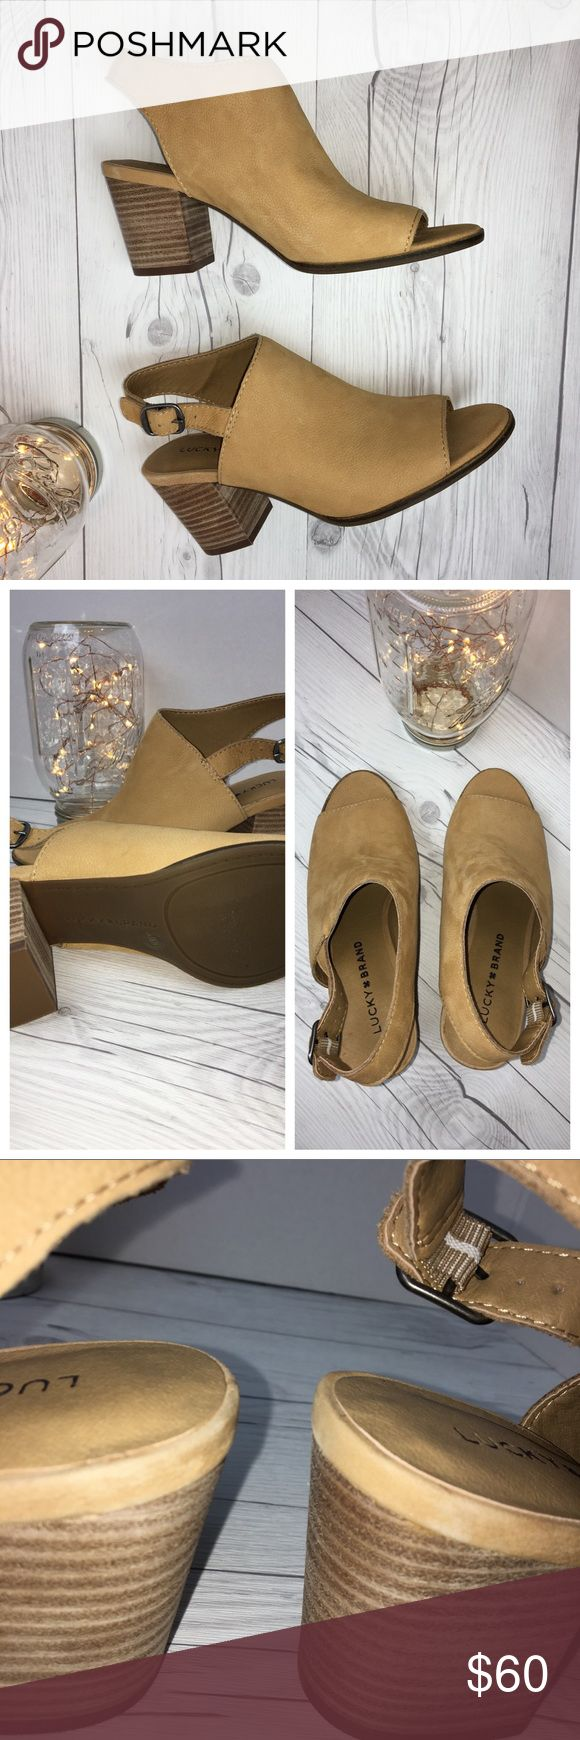 NWOT Lucky Brand🍀 Tan Leather Slingback Heels 6.5 New without tag Lucky Brand 🍀 Tan Leather Slingback Heels In Size 6.5   Man Made Lining/Sole Upper Leather. Heels have some wear from being in store (See Photos). ☃️Make an Offer ! Lucky Brand Shoes Heels